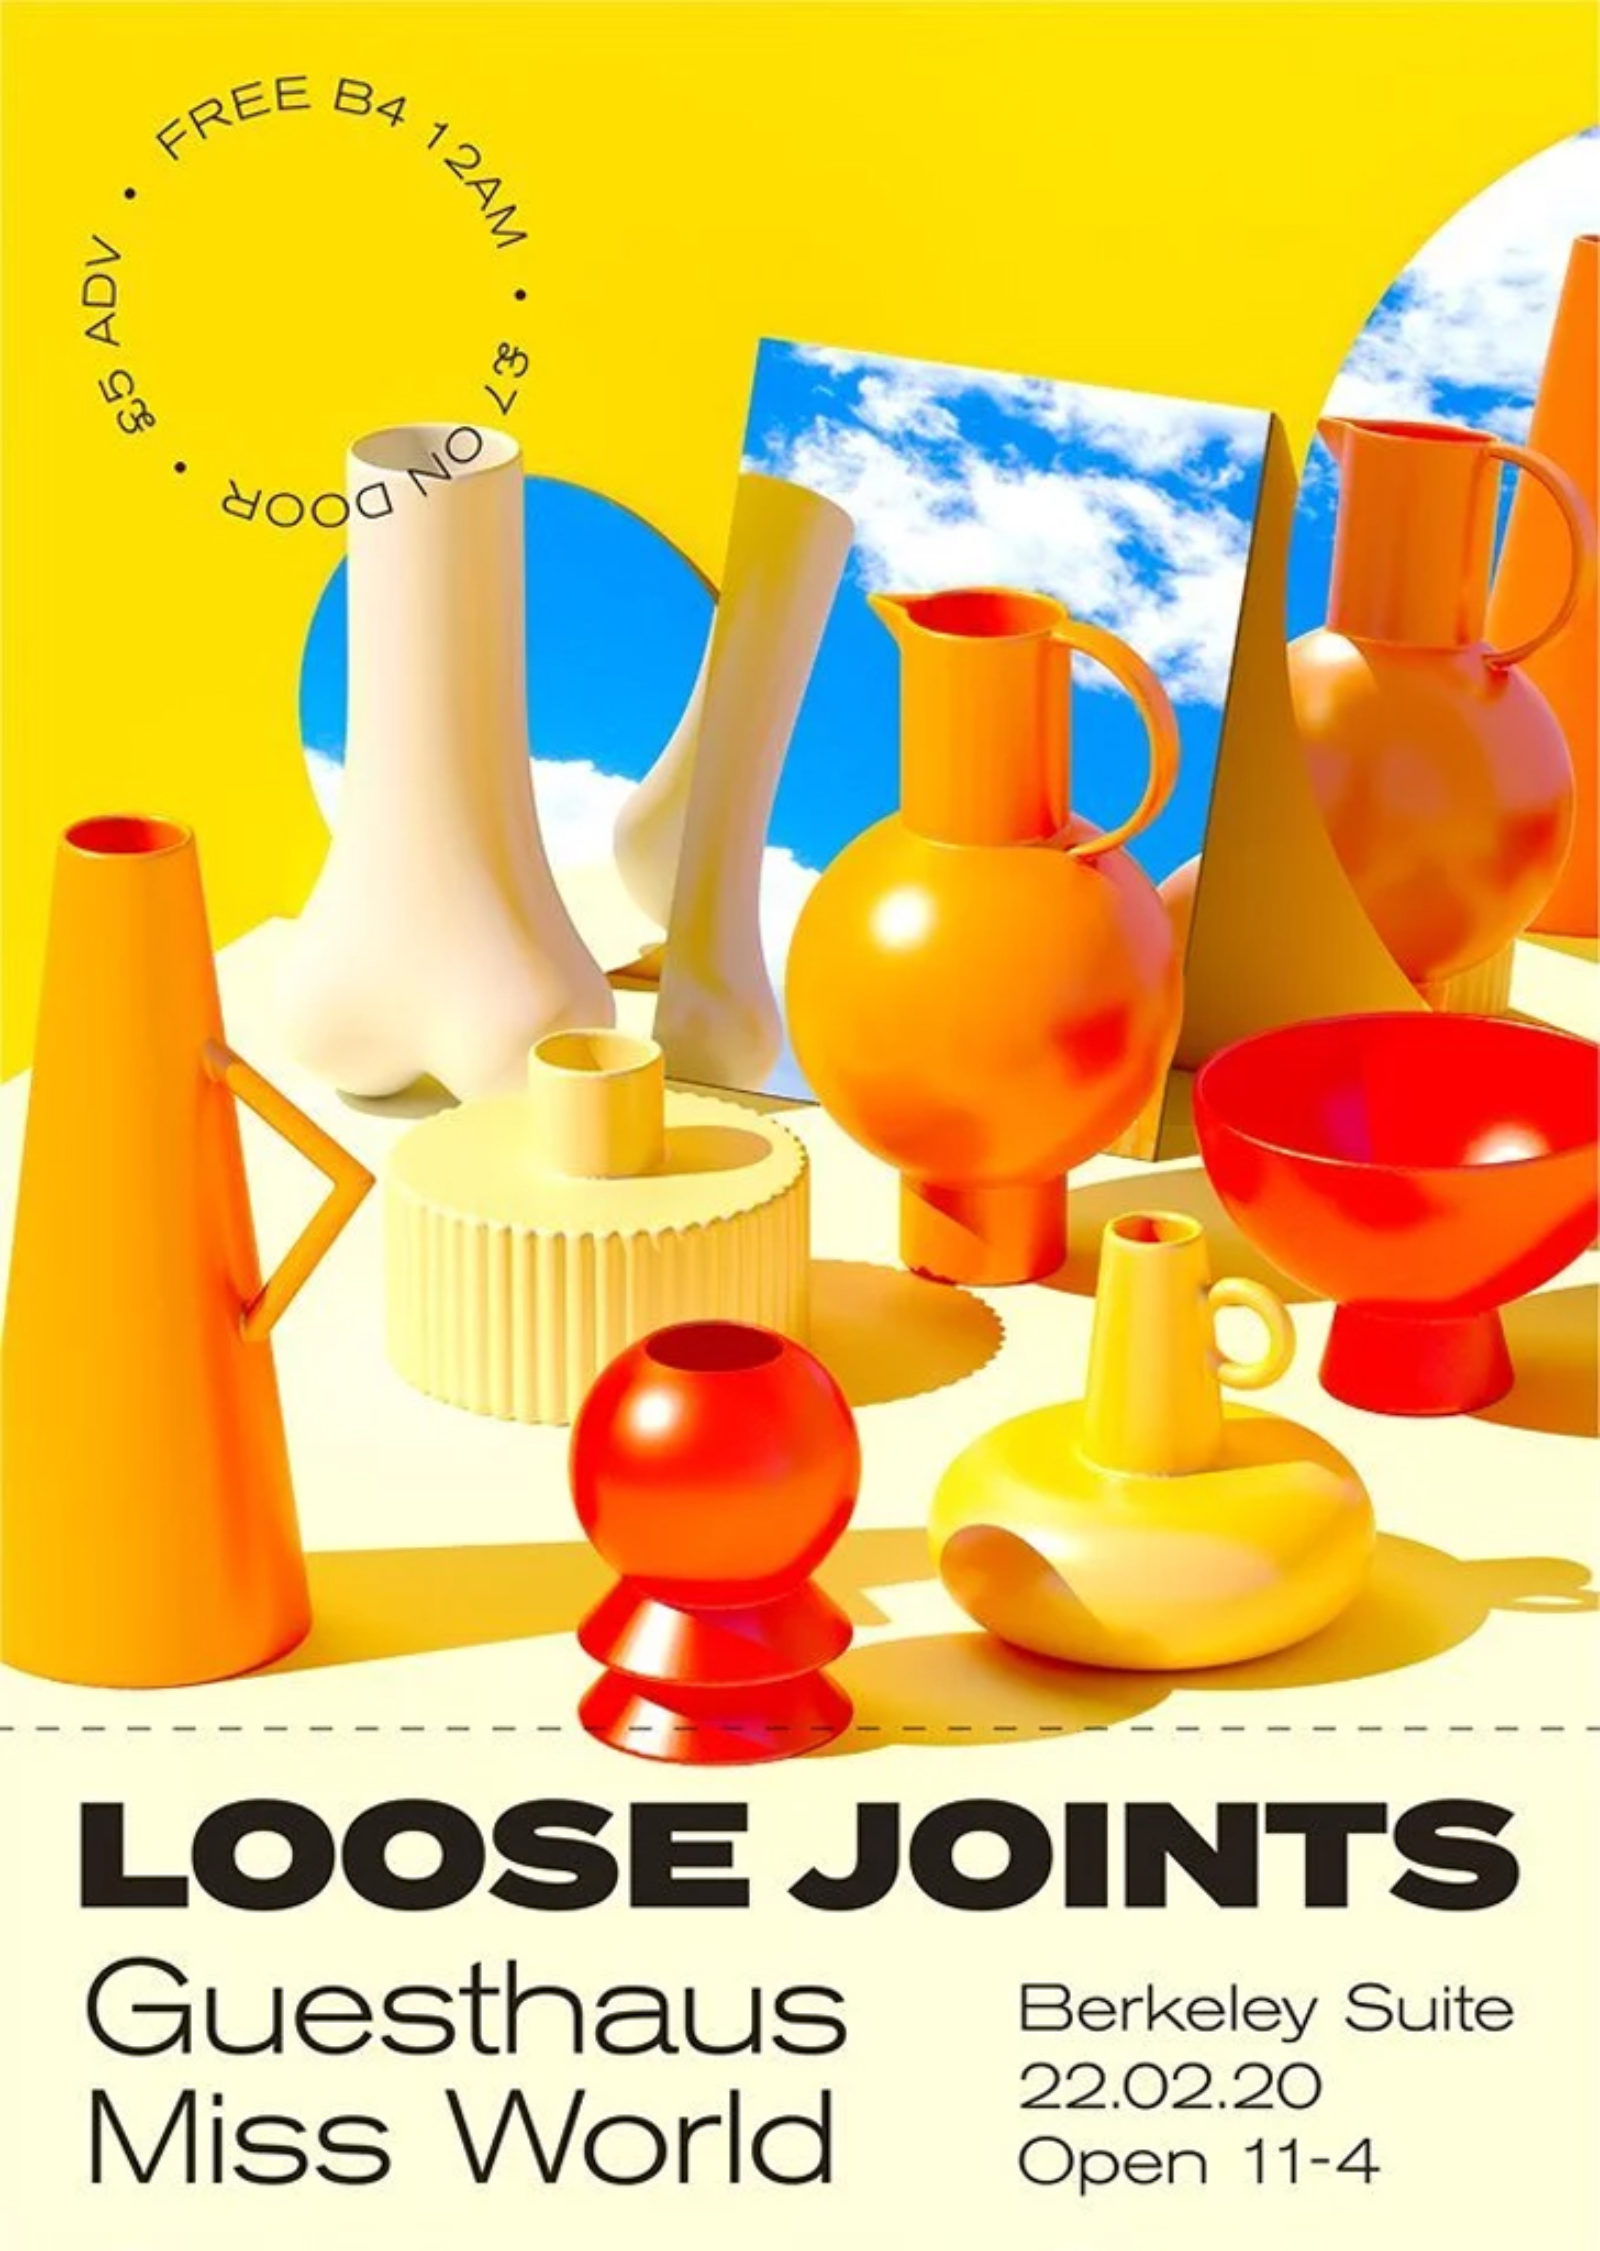 Loose Joints - Miss World, Guesthaus